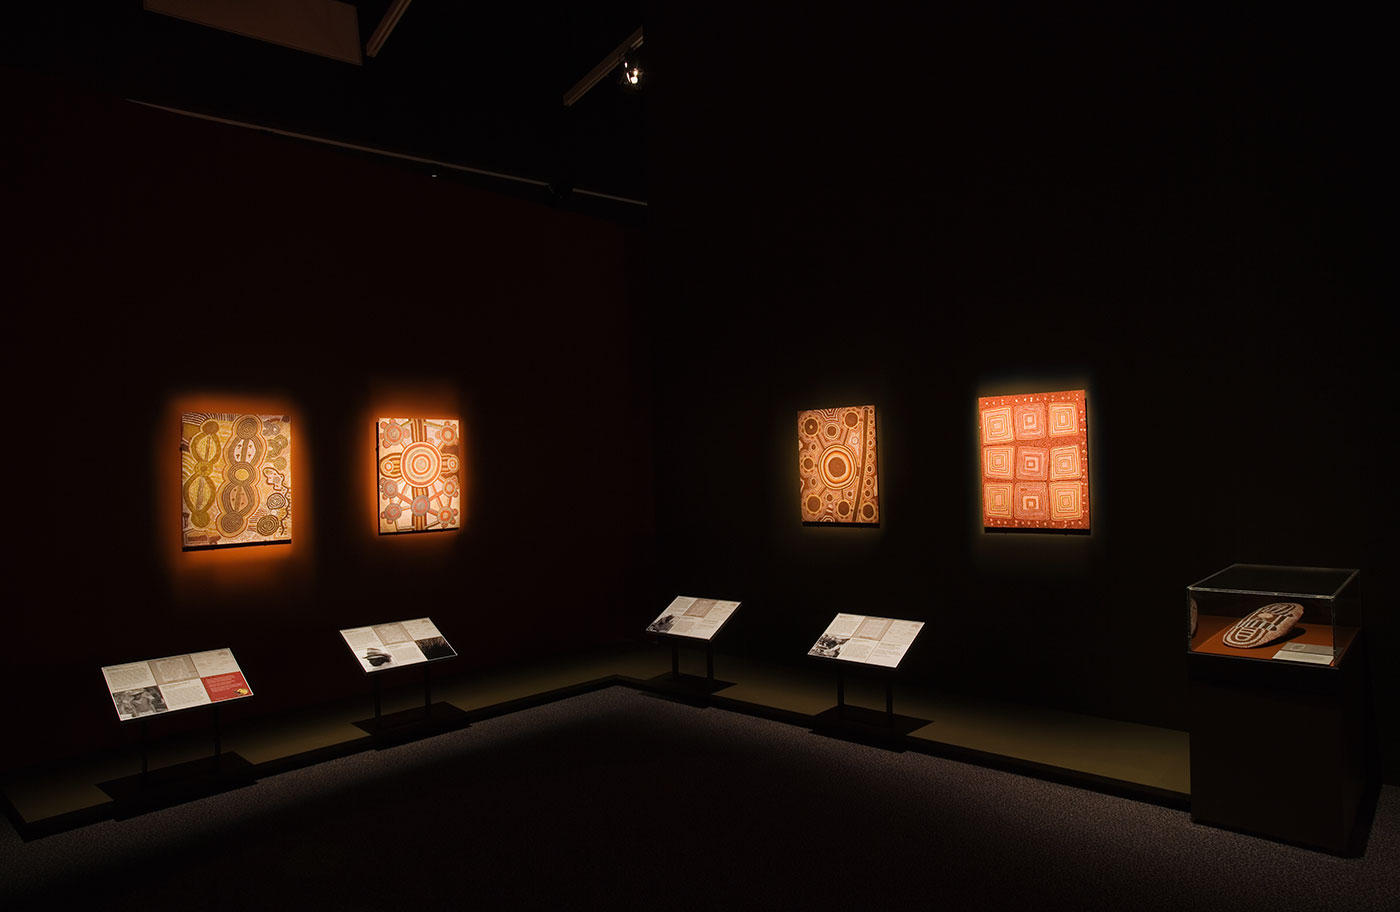 Gallery shot showing four Papunya canvases, including 'Possum Men of Yirtjurunya' at far right. - click to view larger image